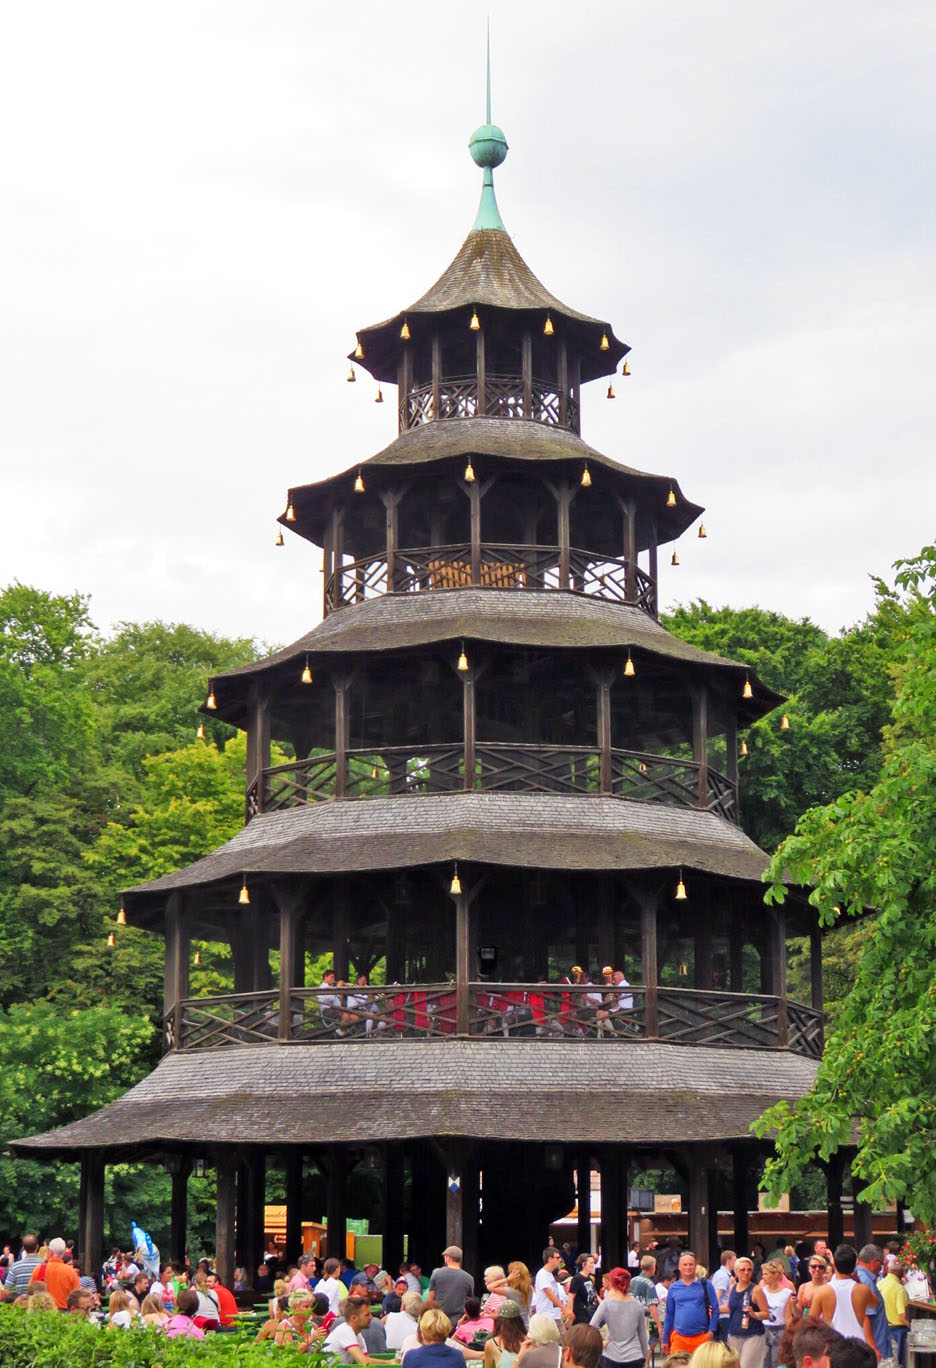 Chinesischer Turm beer garden in the English Garden.